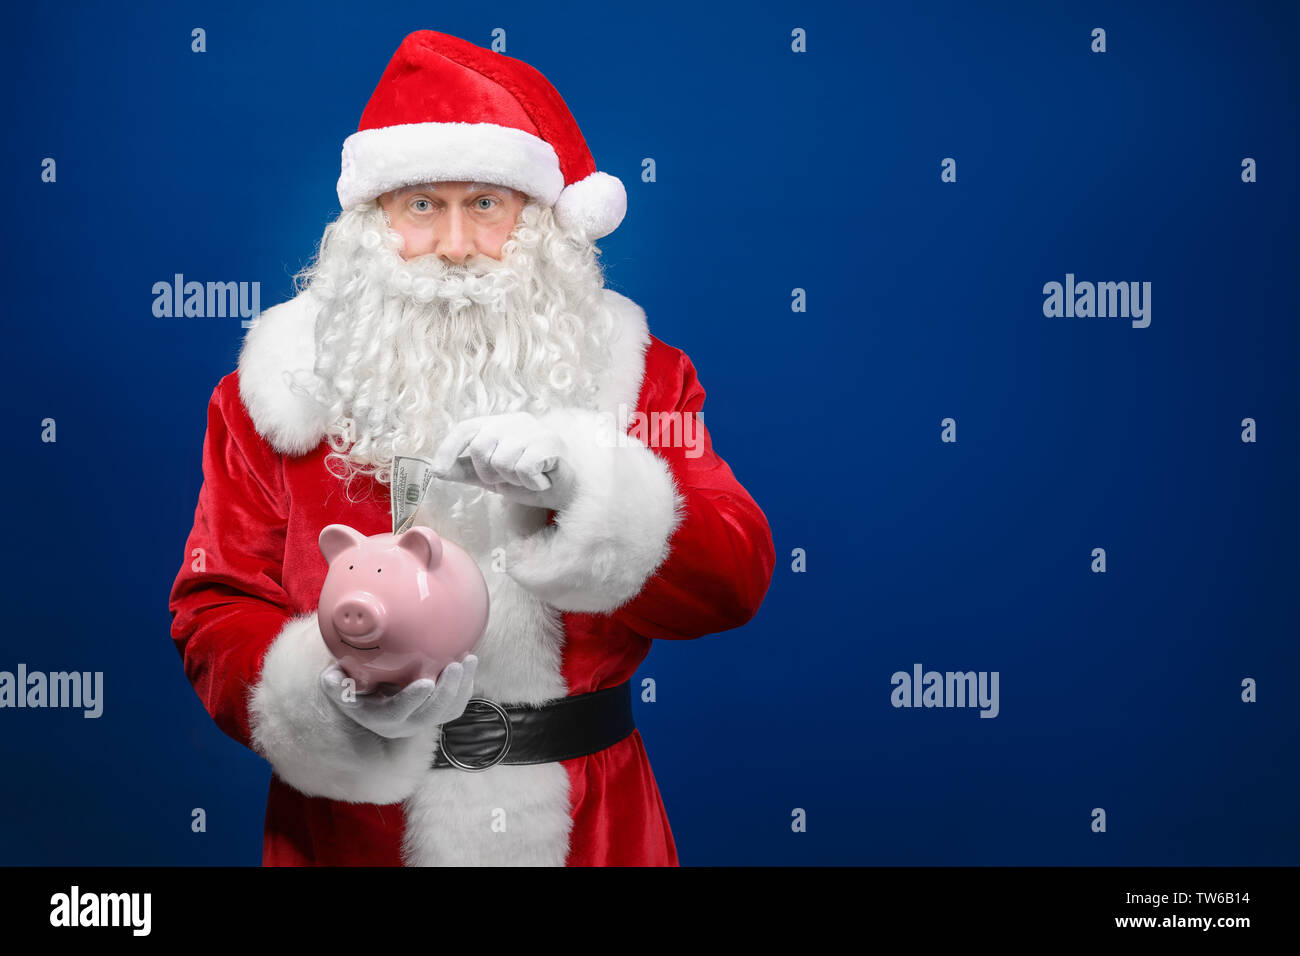 Santa Claus putting dollar into piggy bang on color background - Stock Image